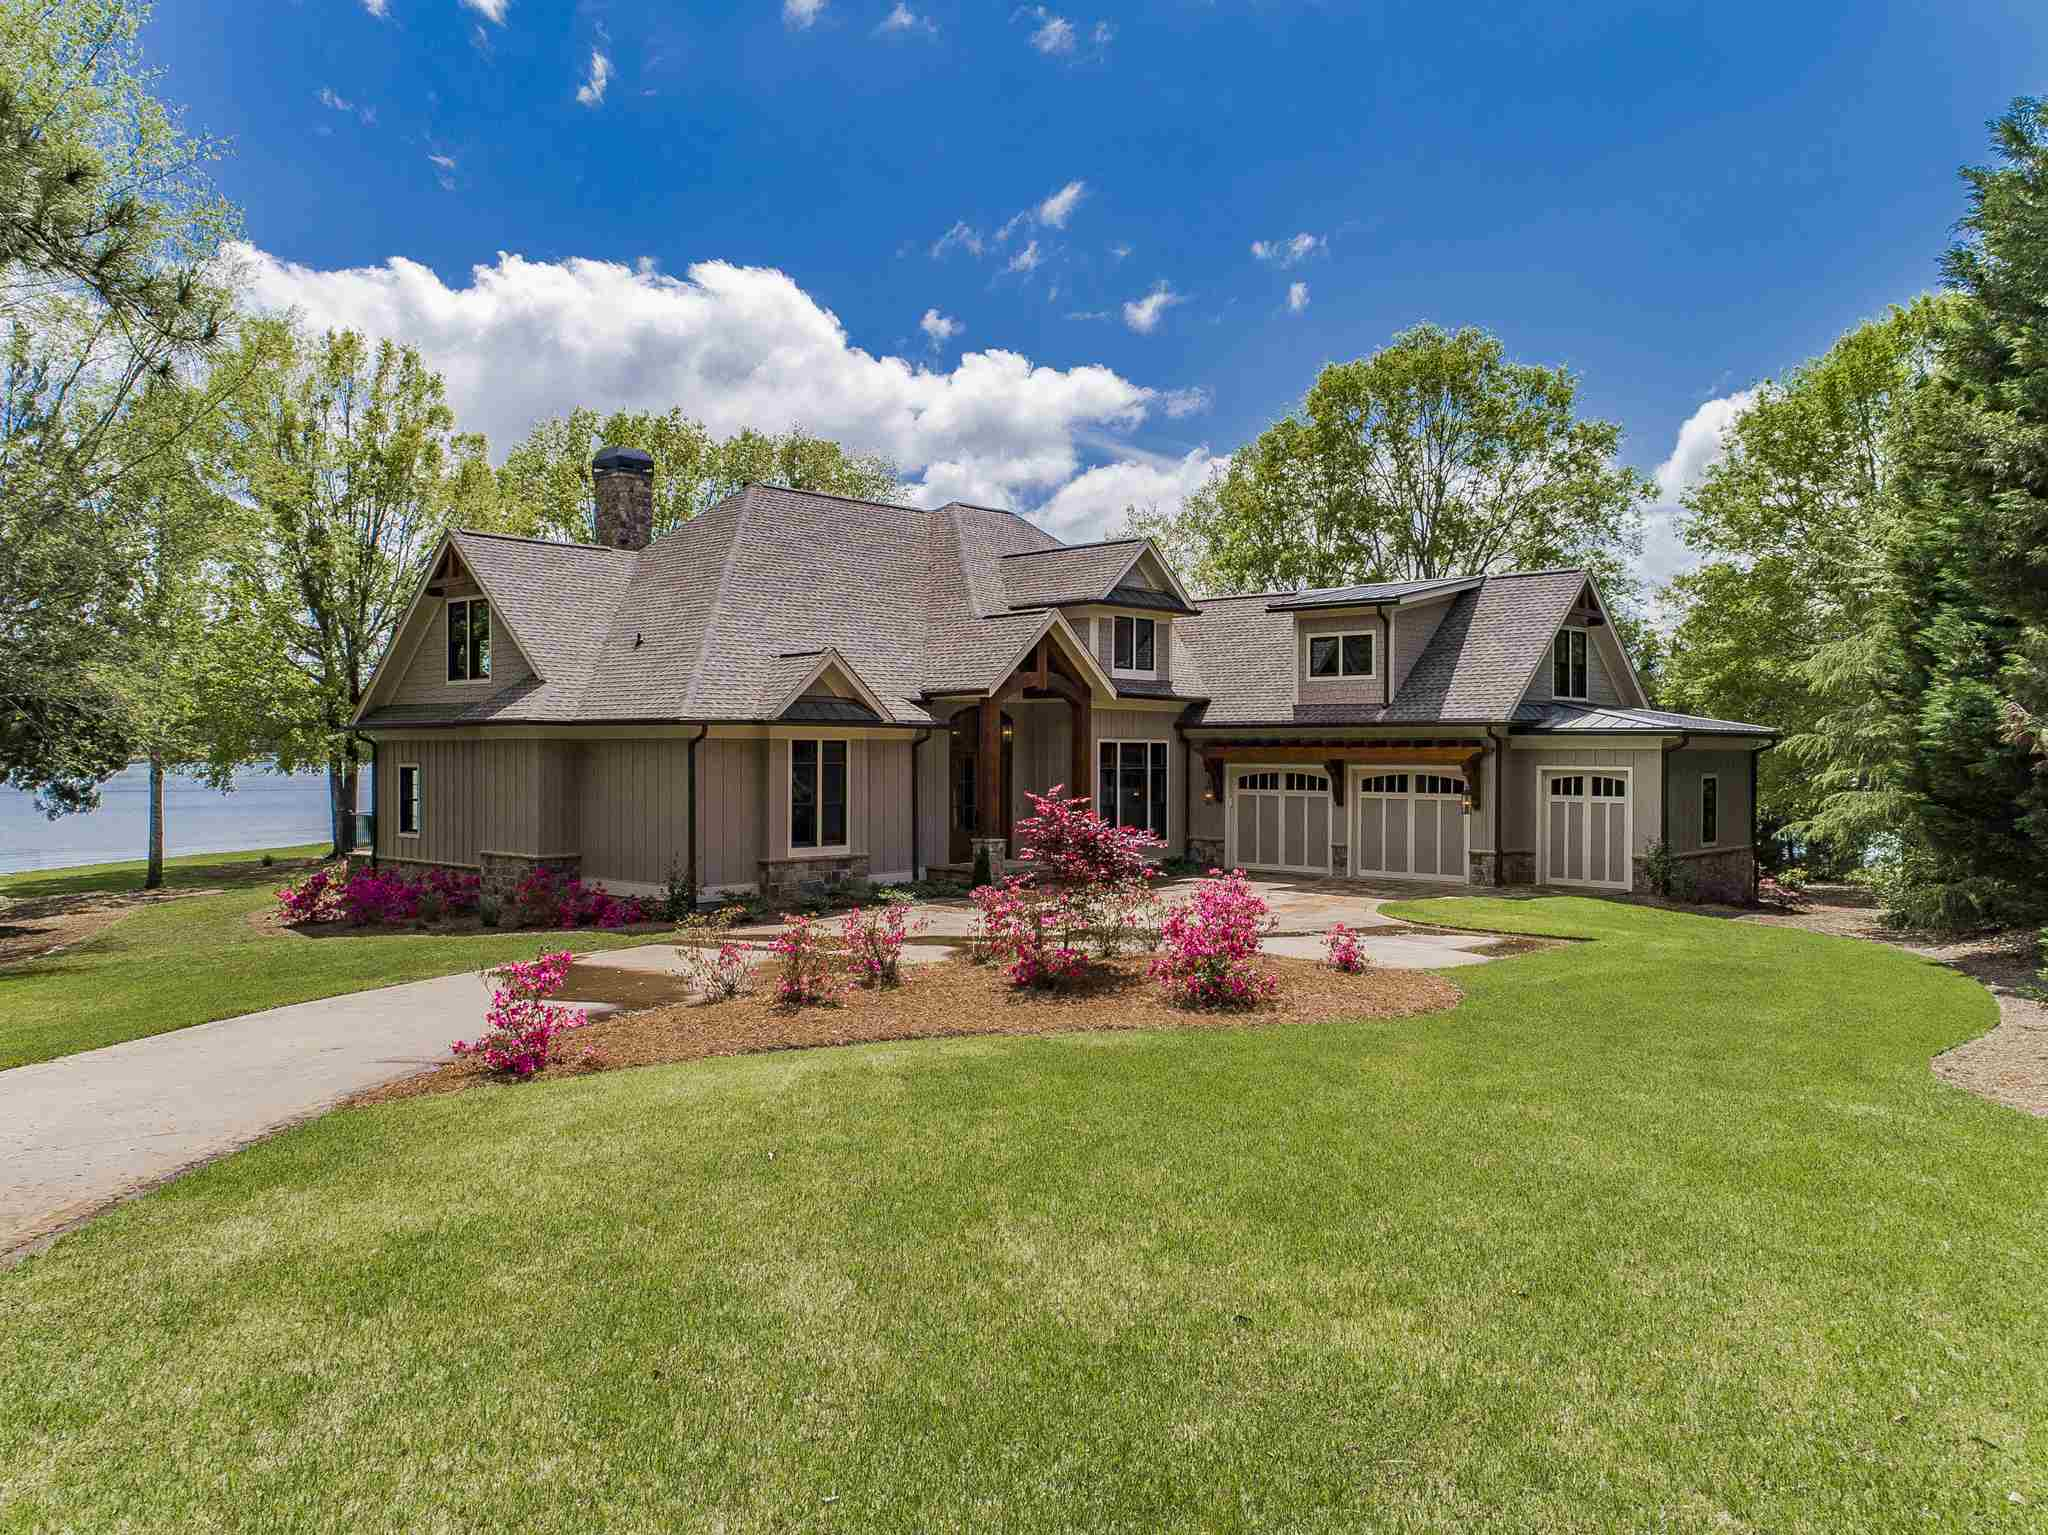 134 WILDWOOD DRIVE, Lake Oconee, Georgia